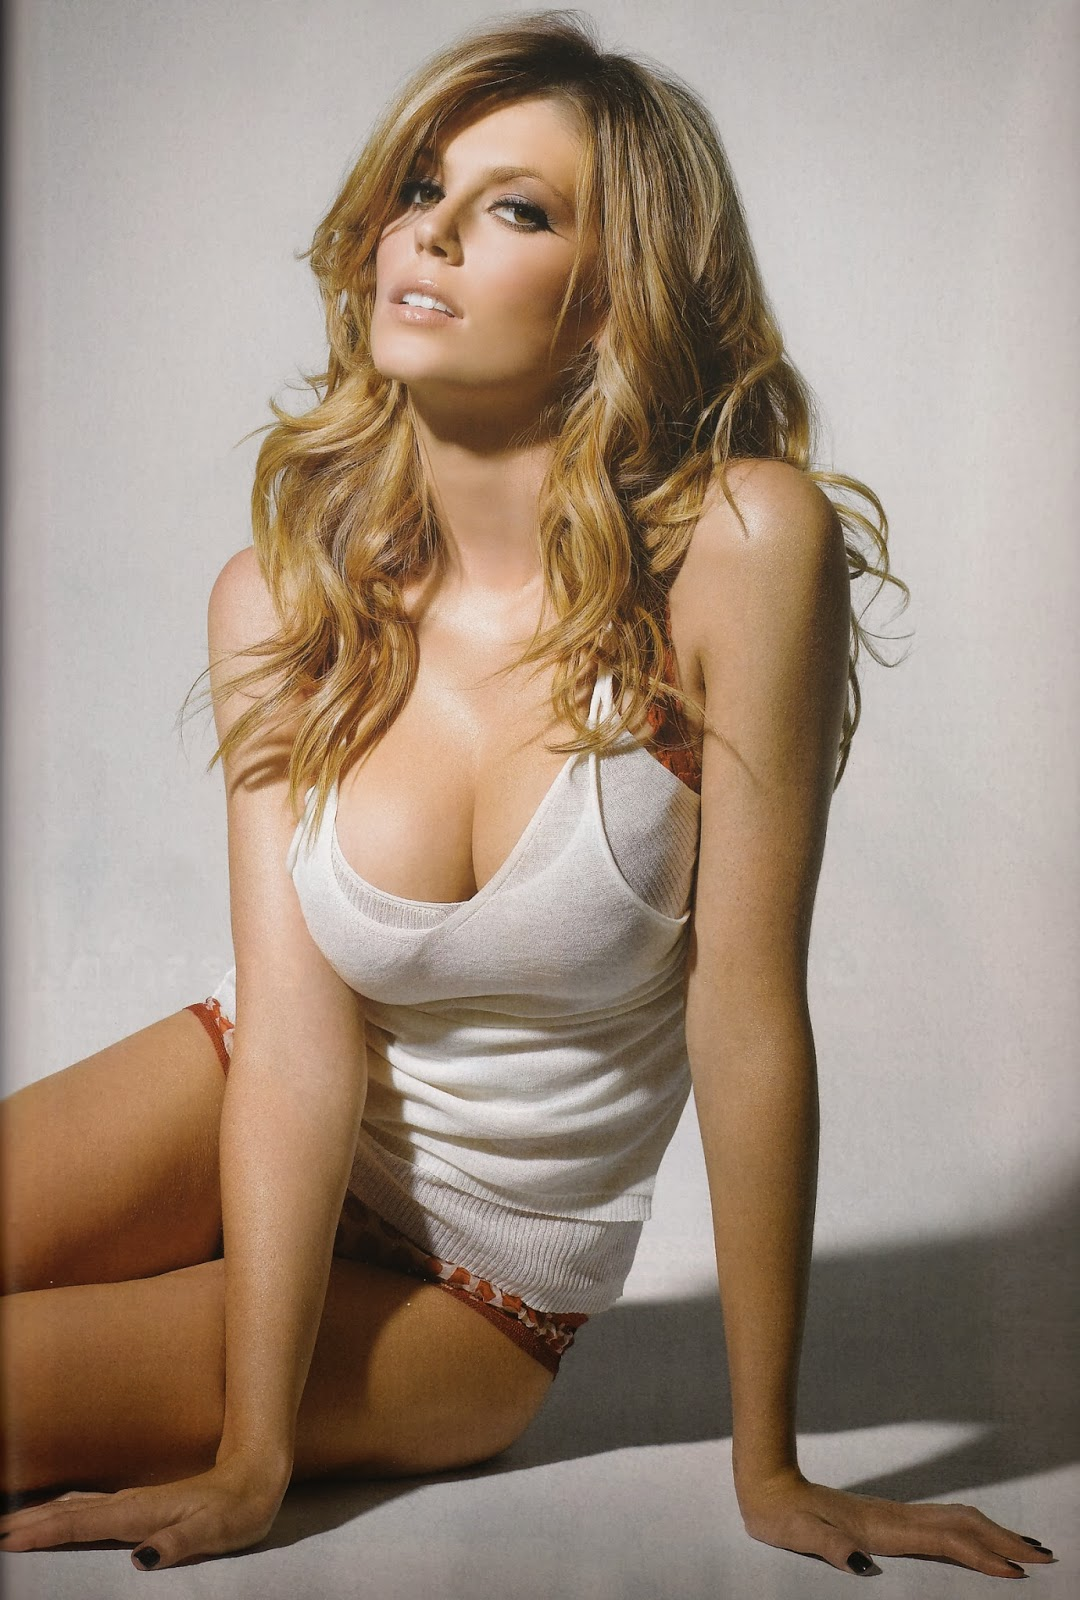 Gorgeous 18 Year Old From France: The Sky Has Fallen: Hot Girl Of Horror #26: Diora Baird